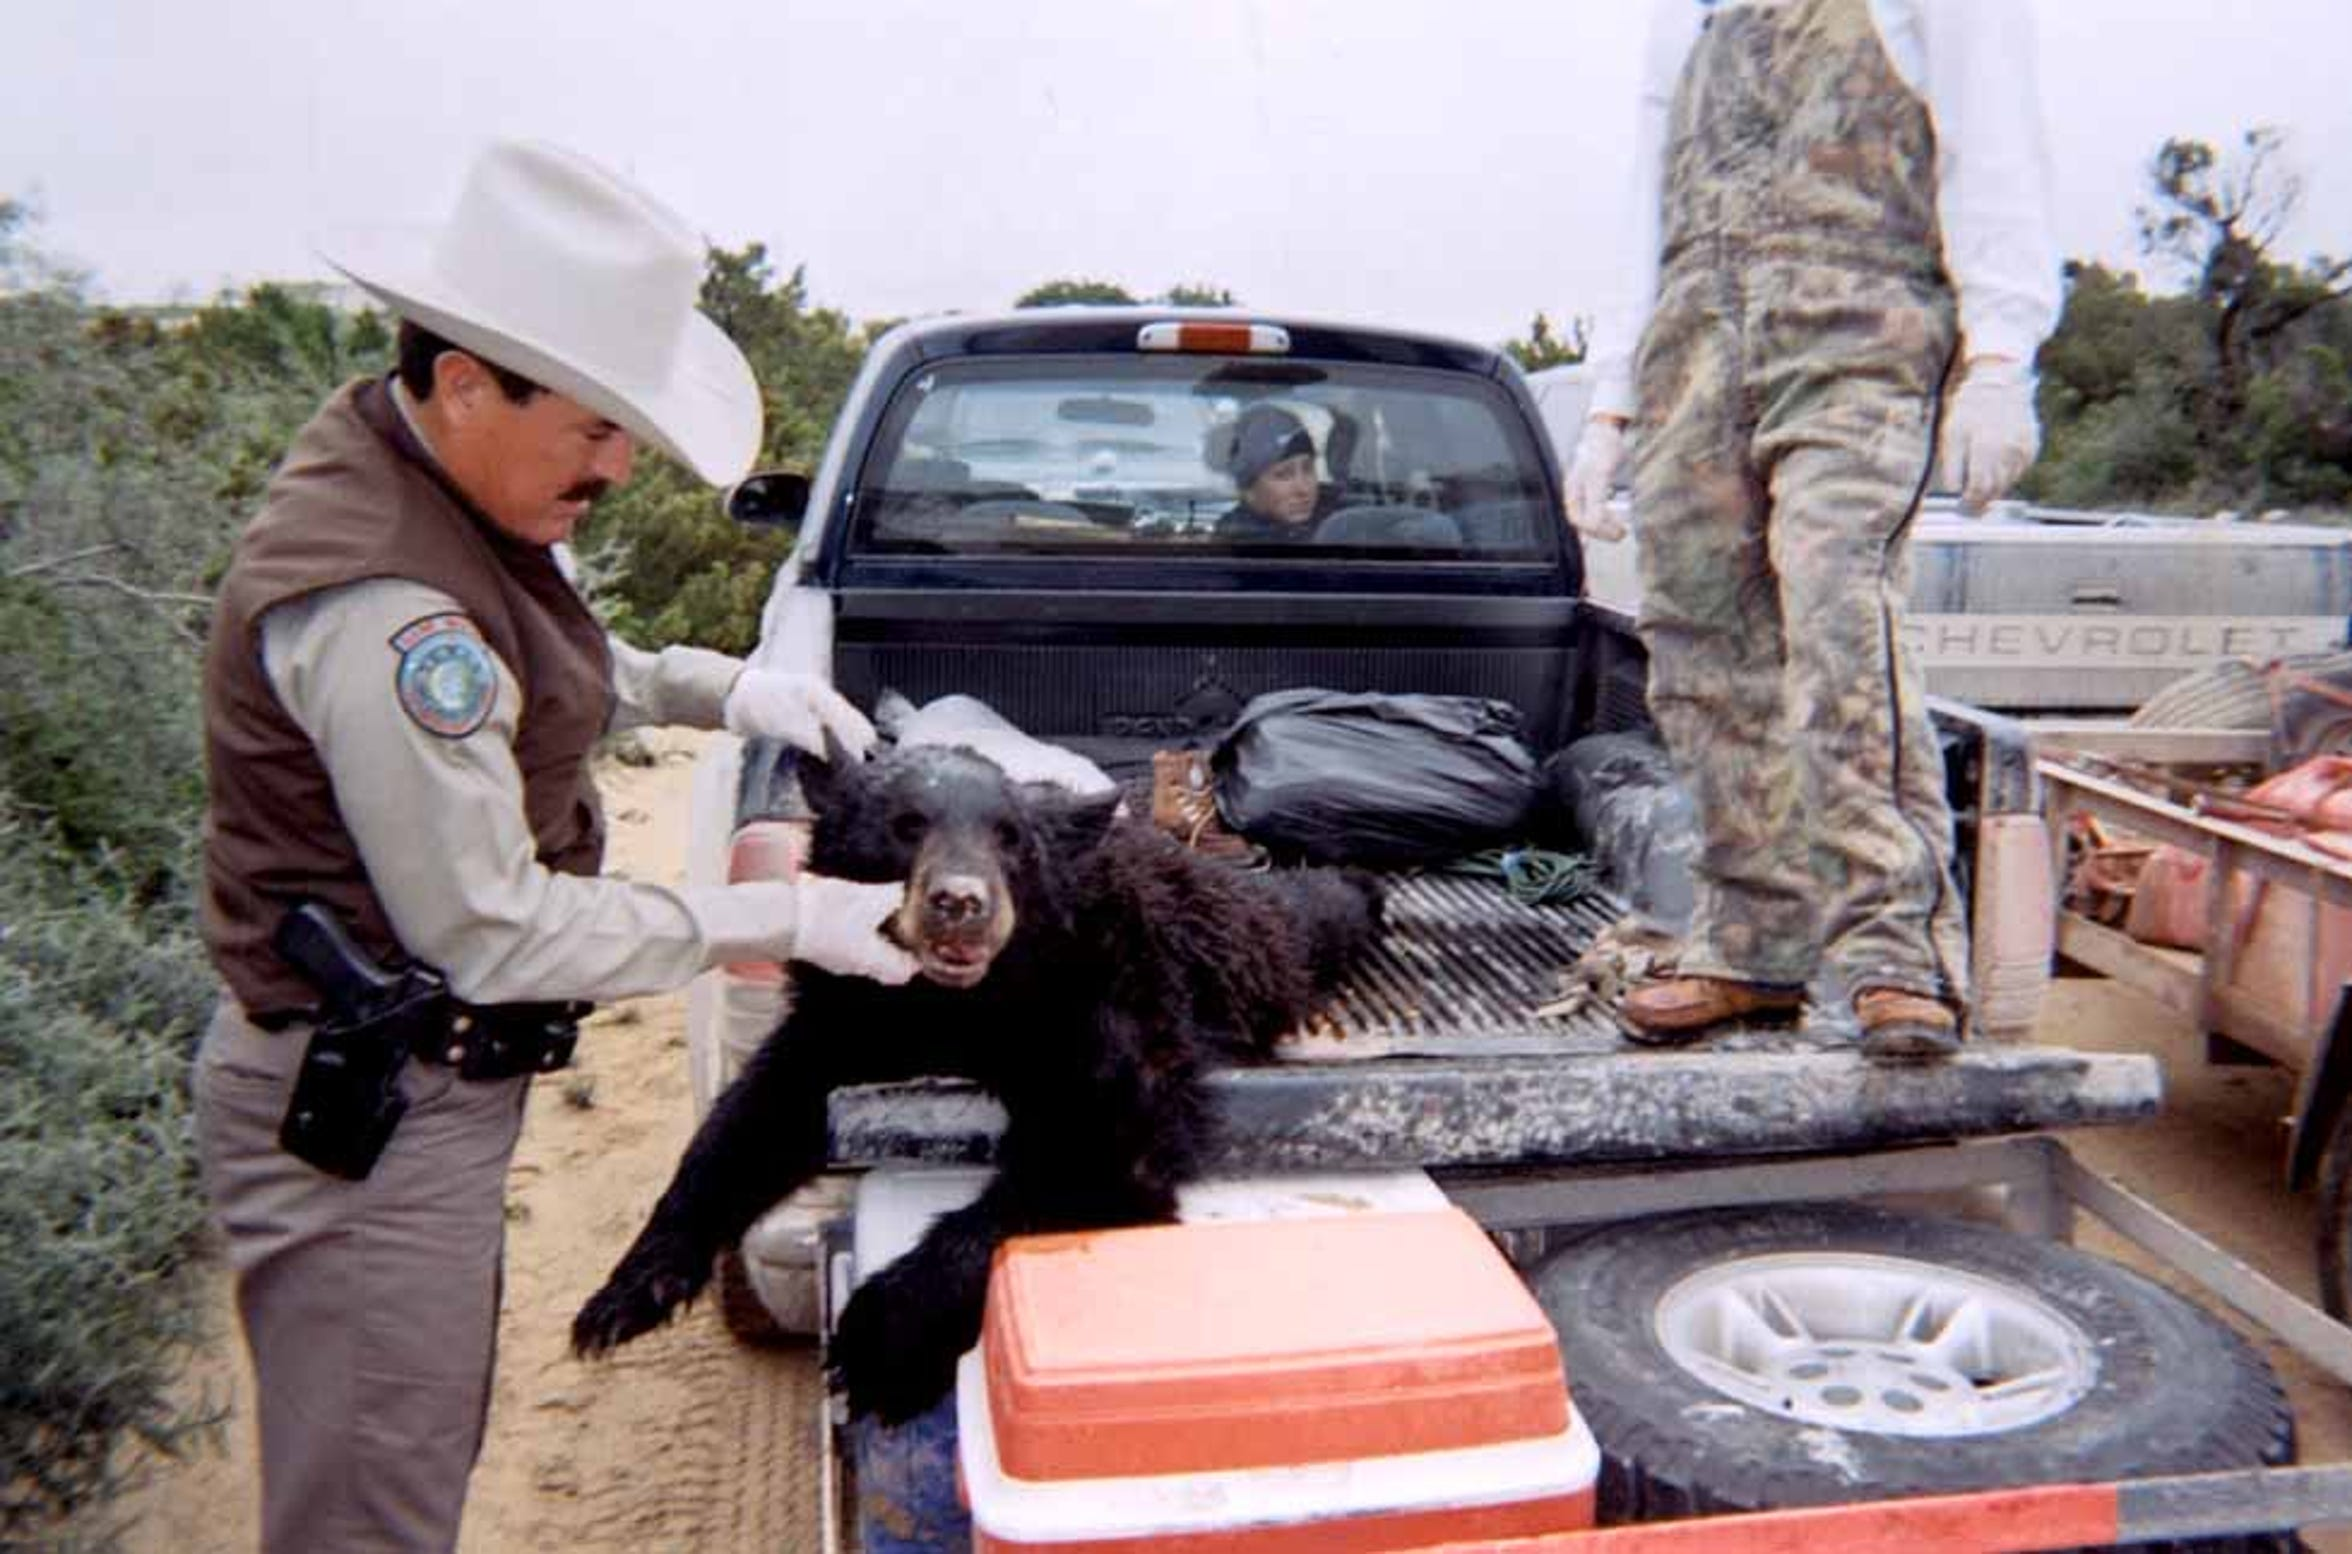 Texas Game Wardens are certified state police, whose duties include search, rescue, enforcement of game & fish laws, outreach, and more.